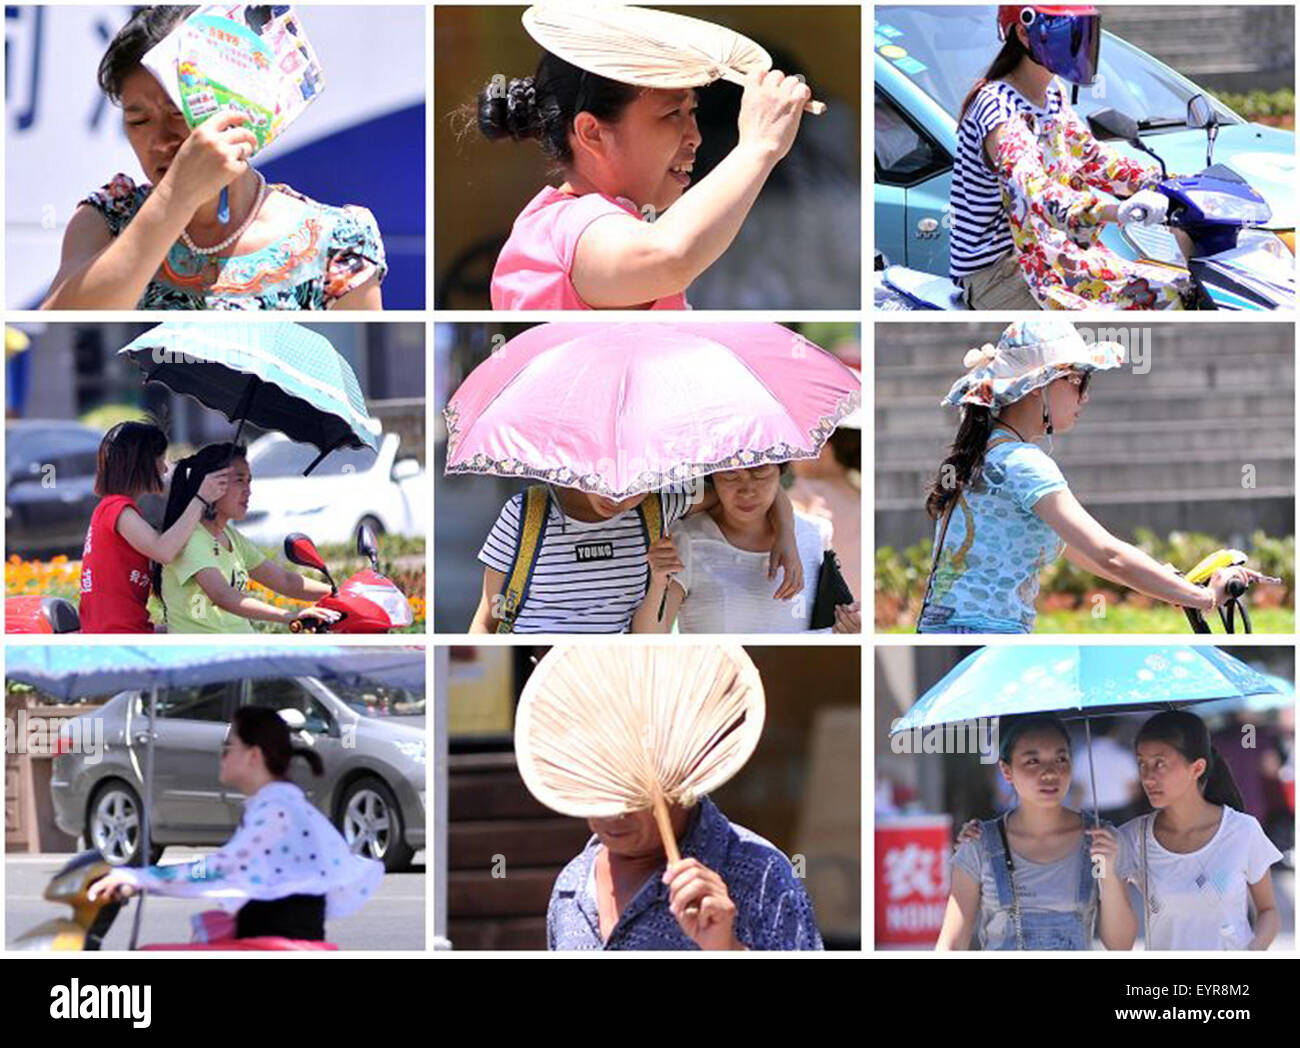 Nanchong. 3rd Aug, 2015. Combined photo taken on Aug. 3, 2015 shows people travelling outdoors in the sun in Nanchong, - Stock Image